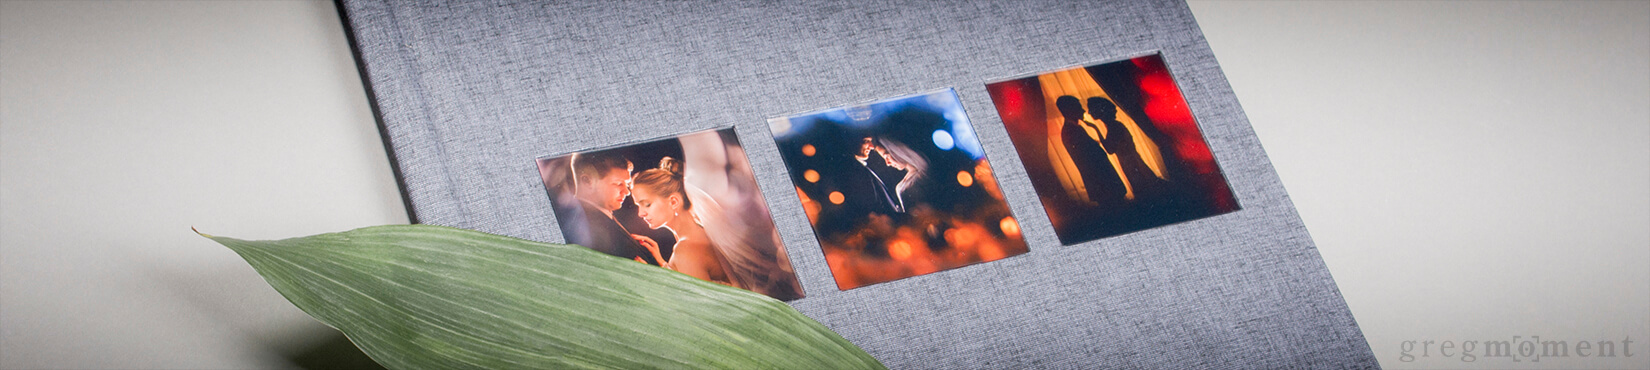 Exclusive photo album lay flat album photo book nphoto 4